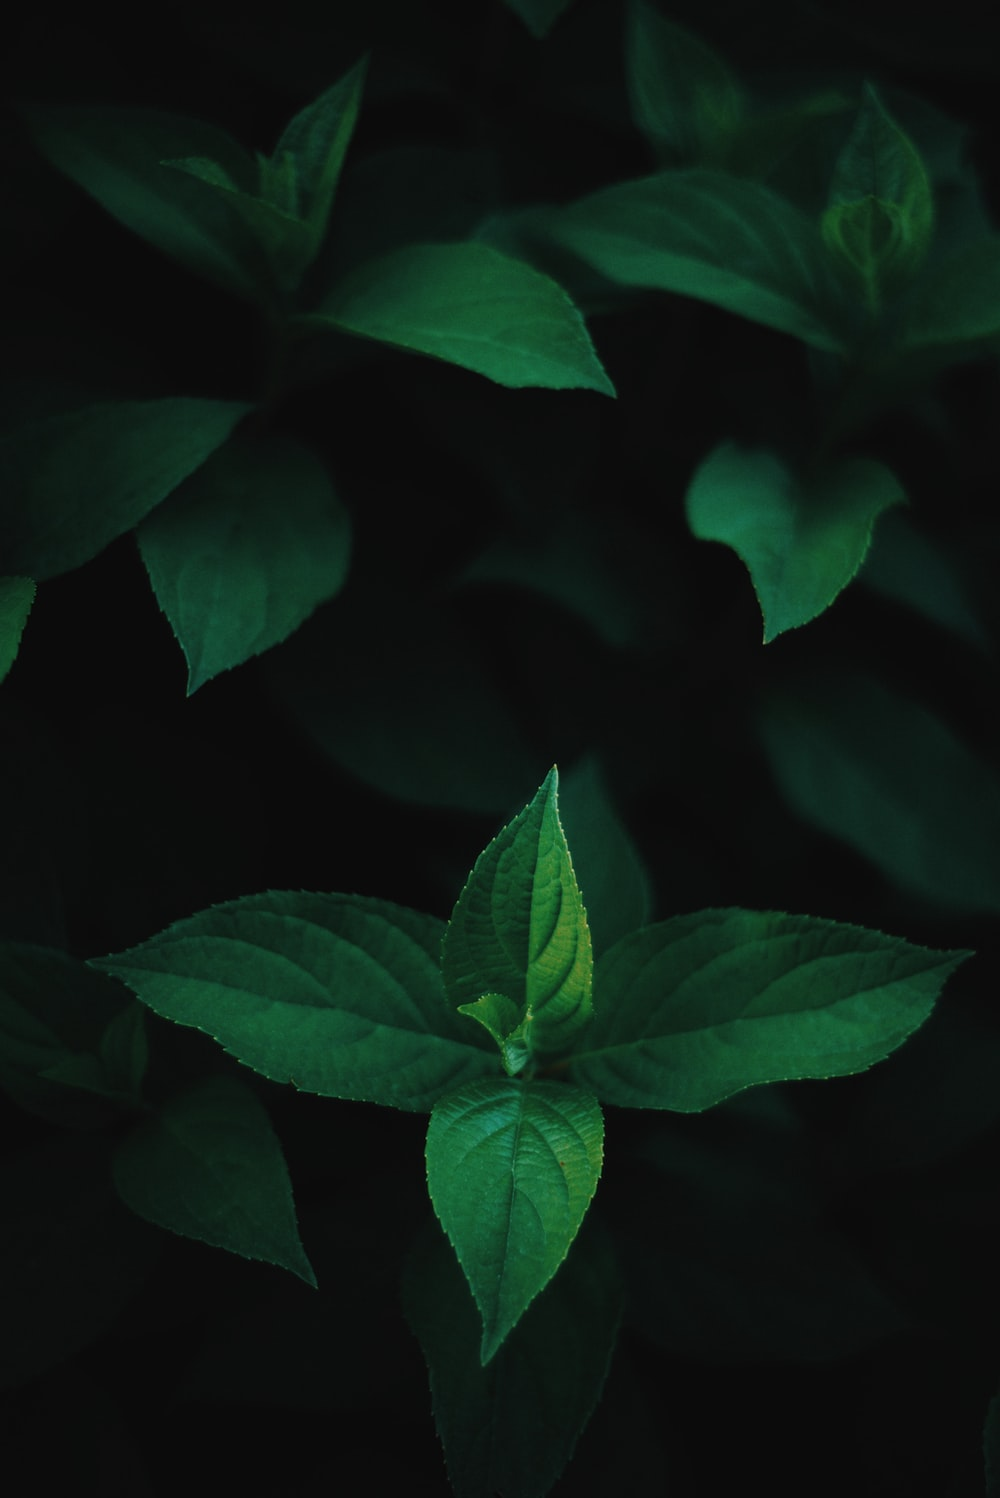 green mint on black background